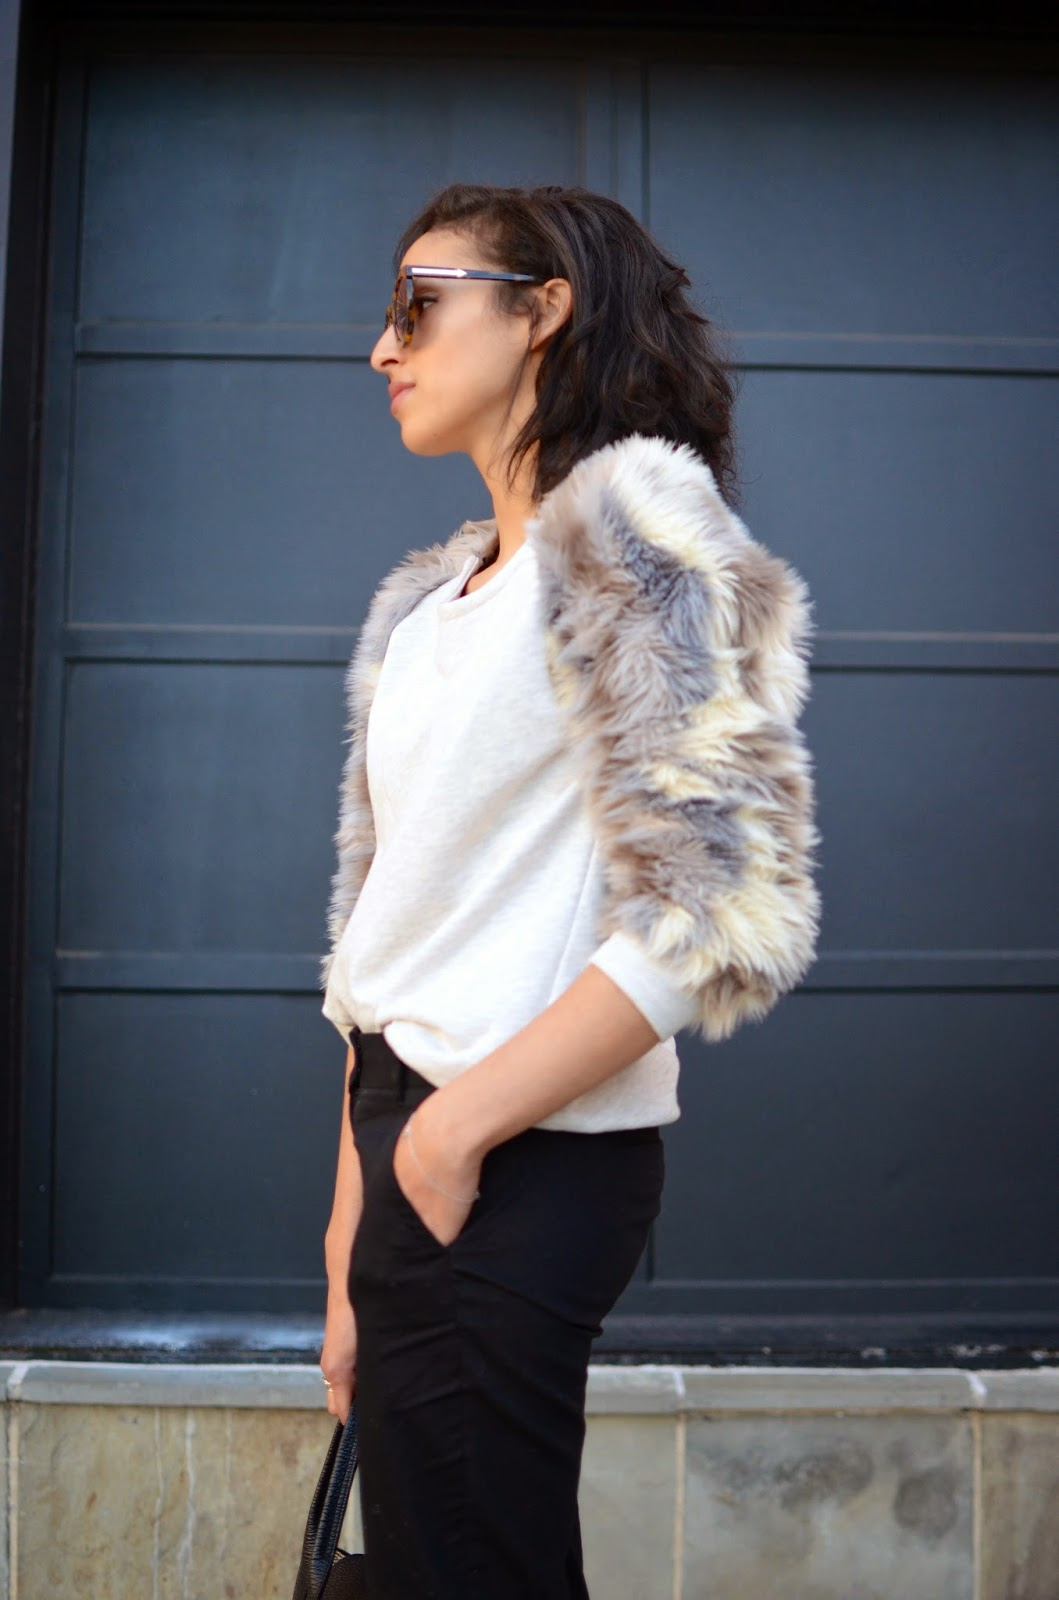 faux fur, faux fur sweatshirt, new hairdo, short curly hair, short hair, Karen Walker Super, 3.1 Phillip Lim Pashli